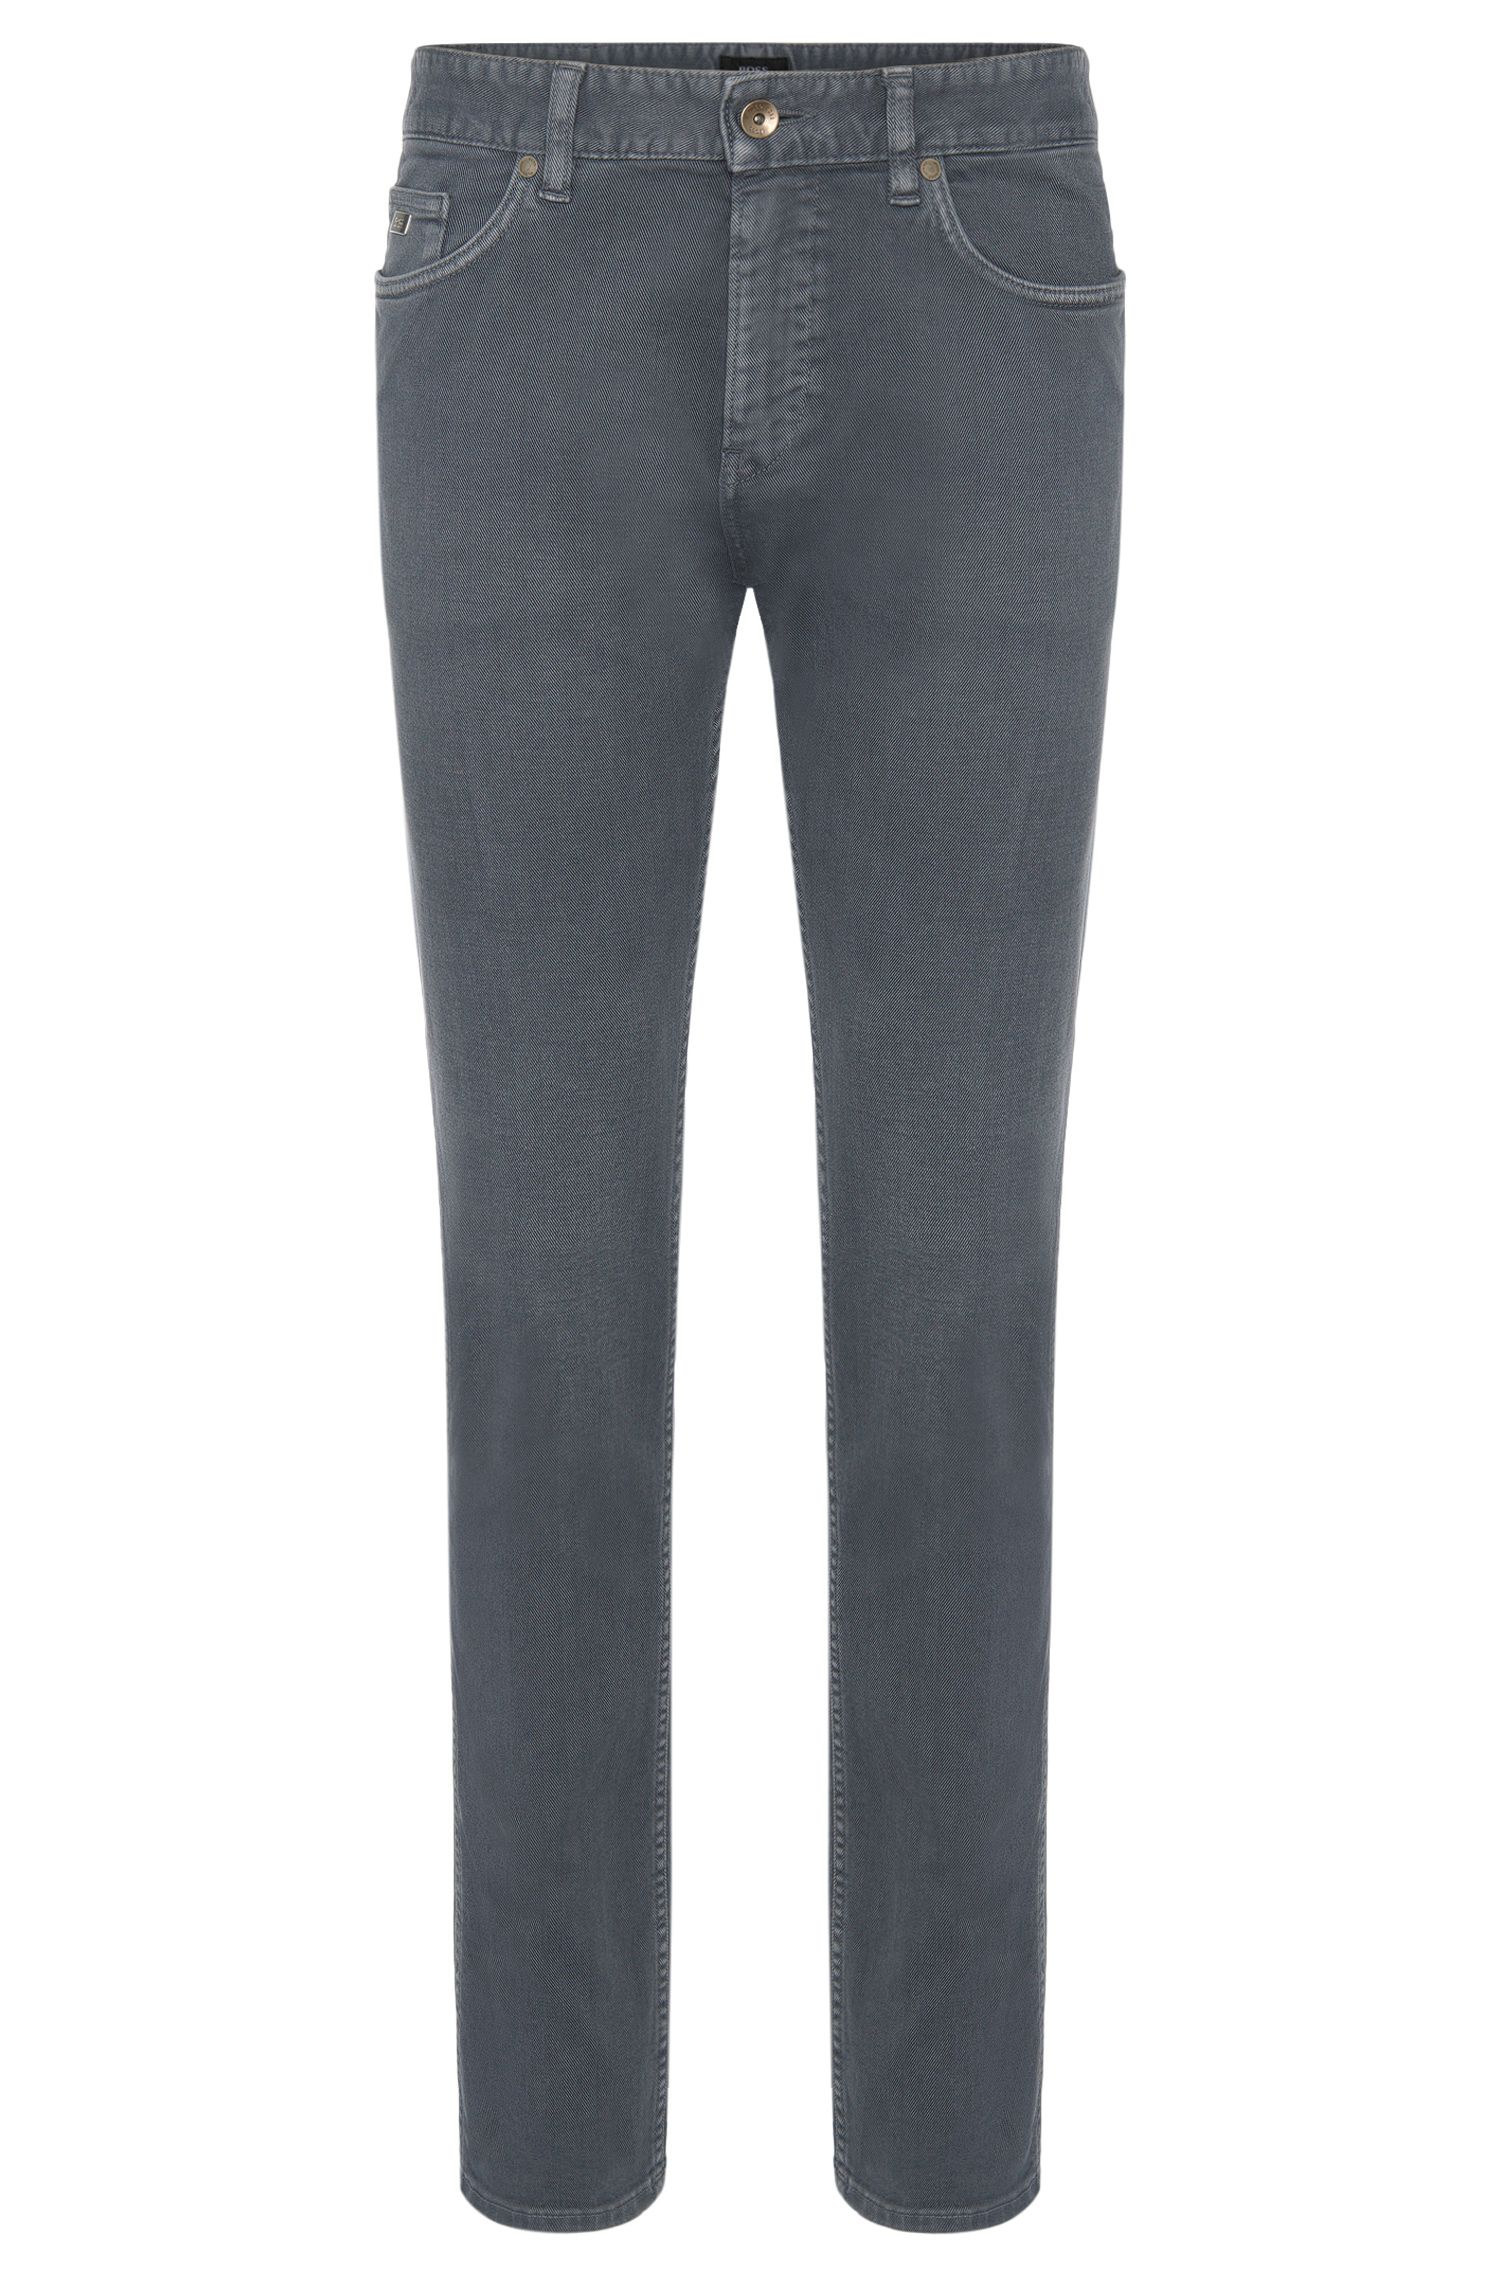 'Delaware' | Slim Fit, 8 oz Stretch Cotton Jeans